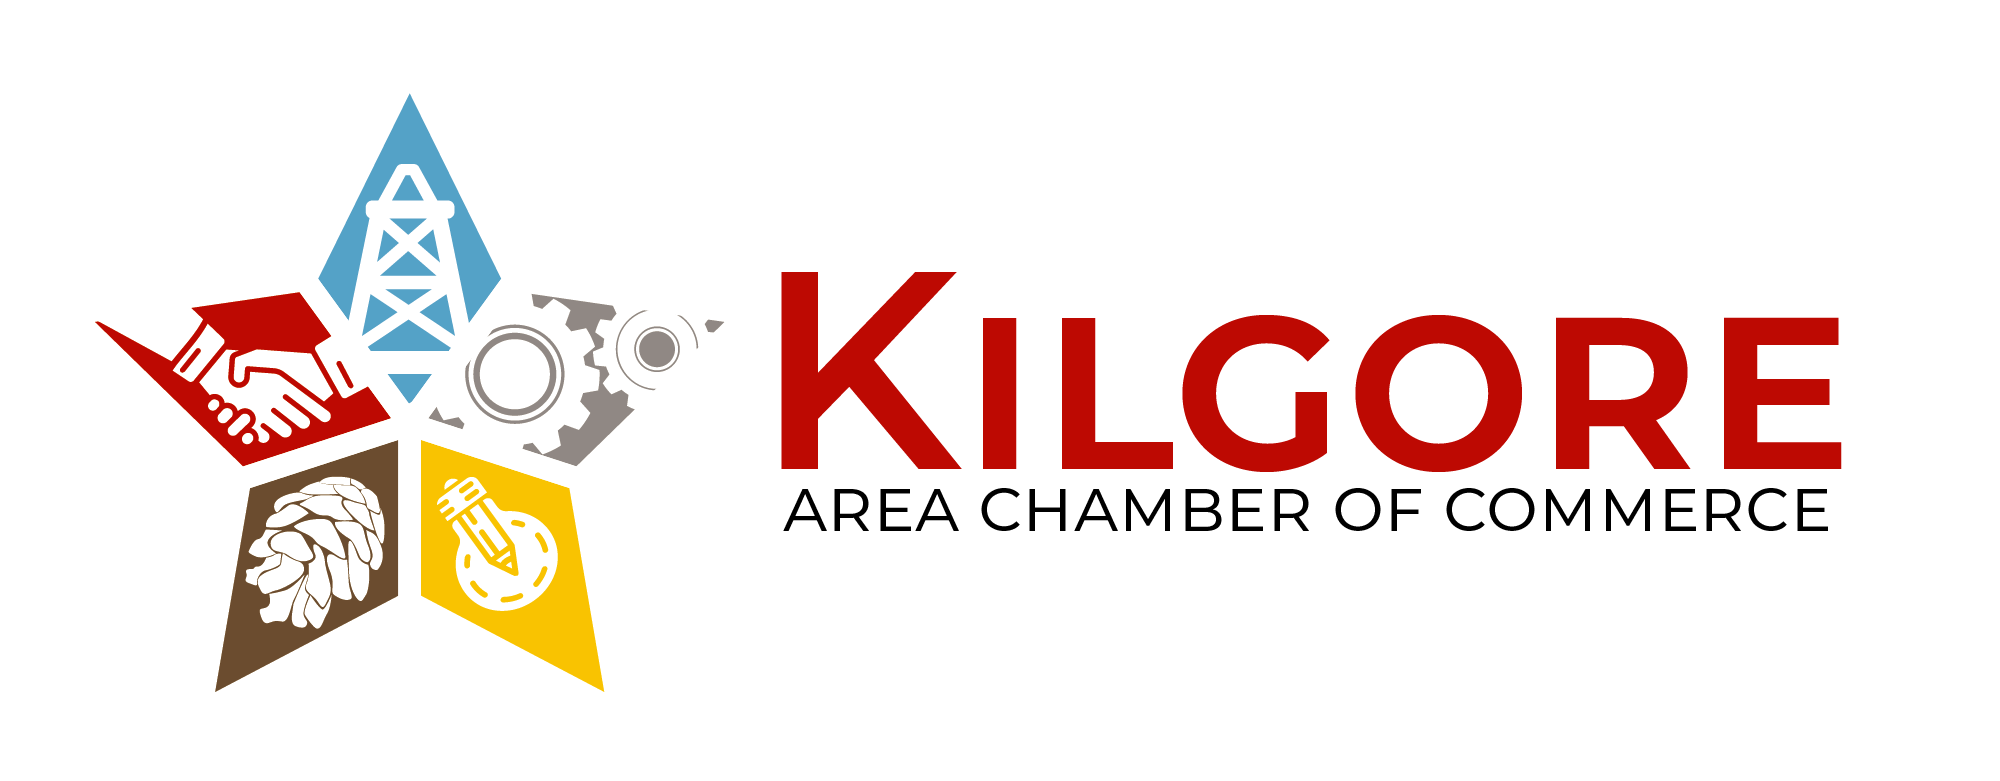 Kilgore Chamber of Commerce - Lennis Design, Longview TX Web Design